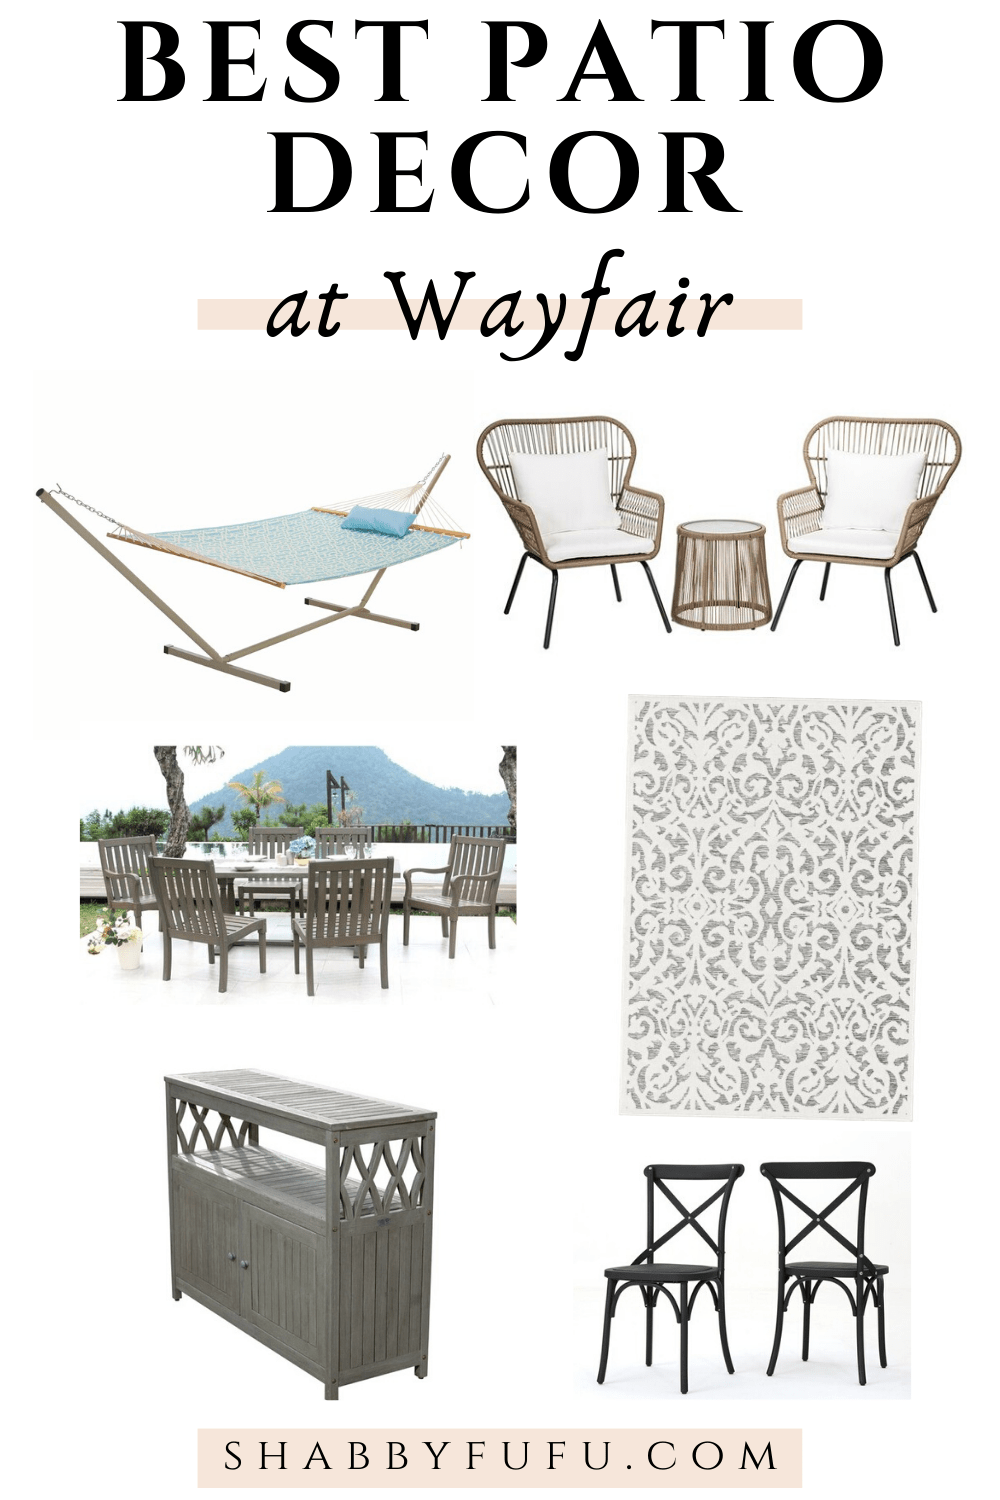 the best patio furniture and decor at Wayfair